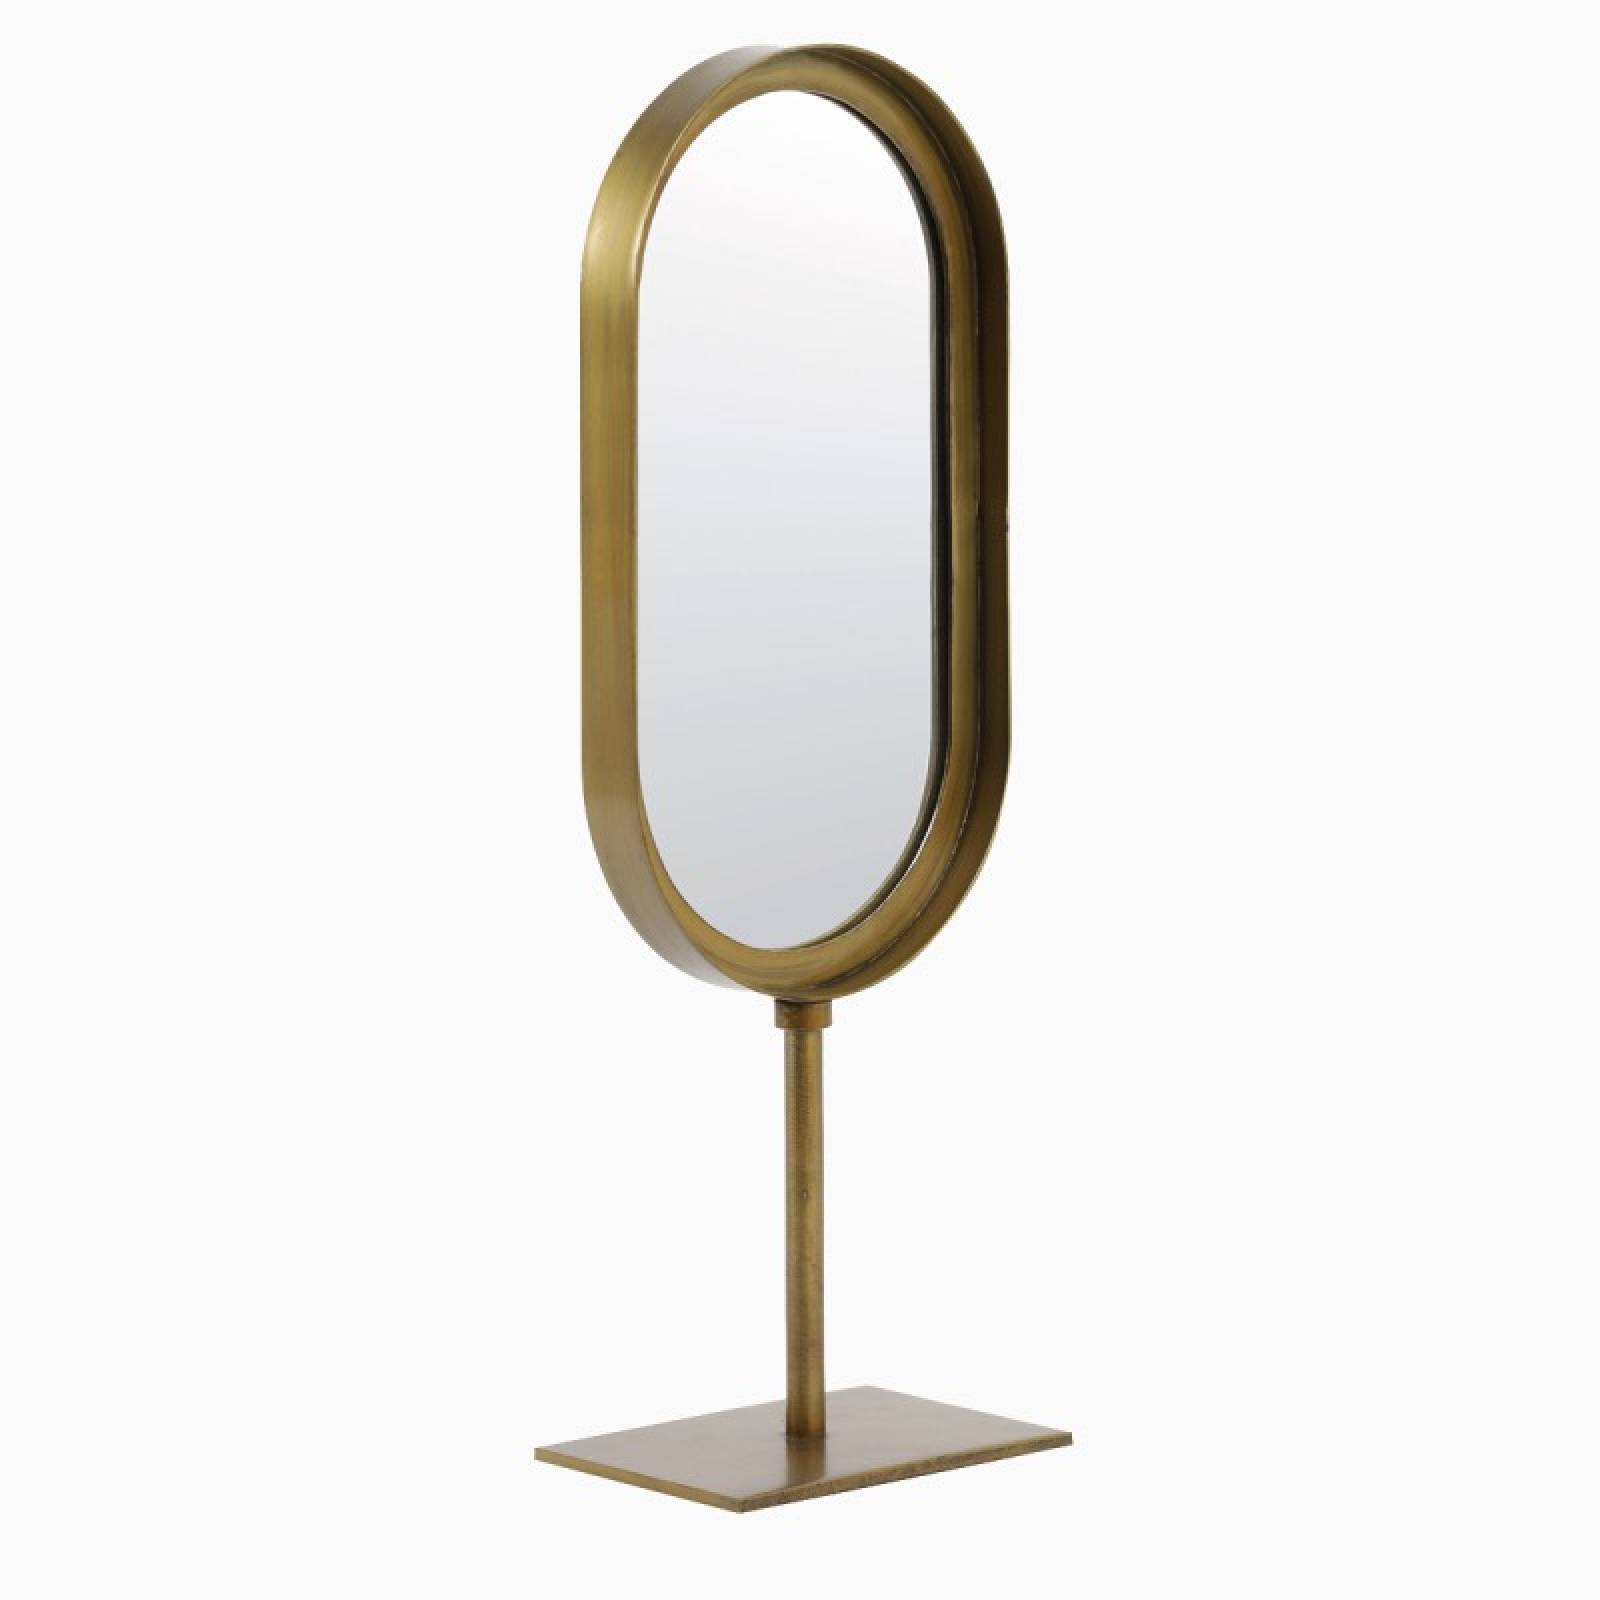 Oval Lure Mirror With Metal Frame On Stand In Brass 16x45cm thumbnails